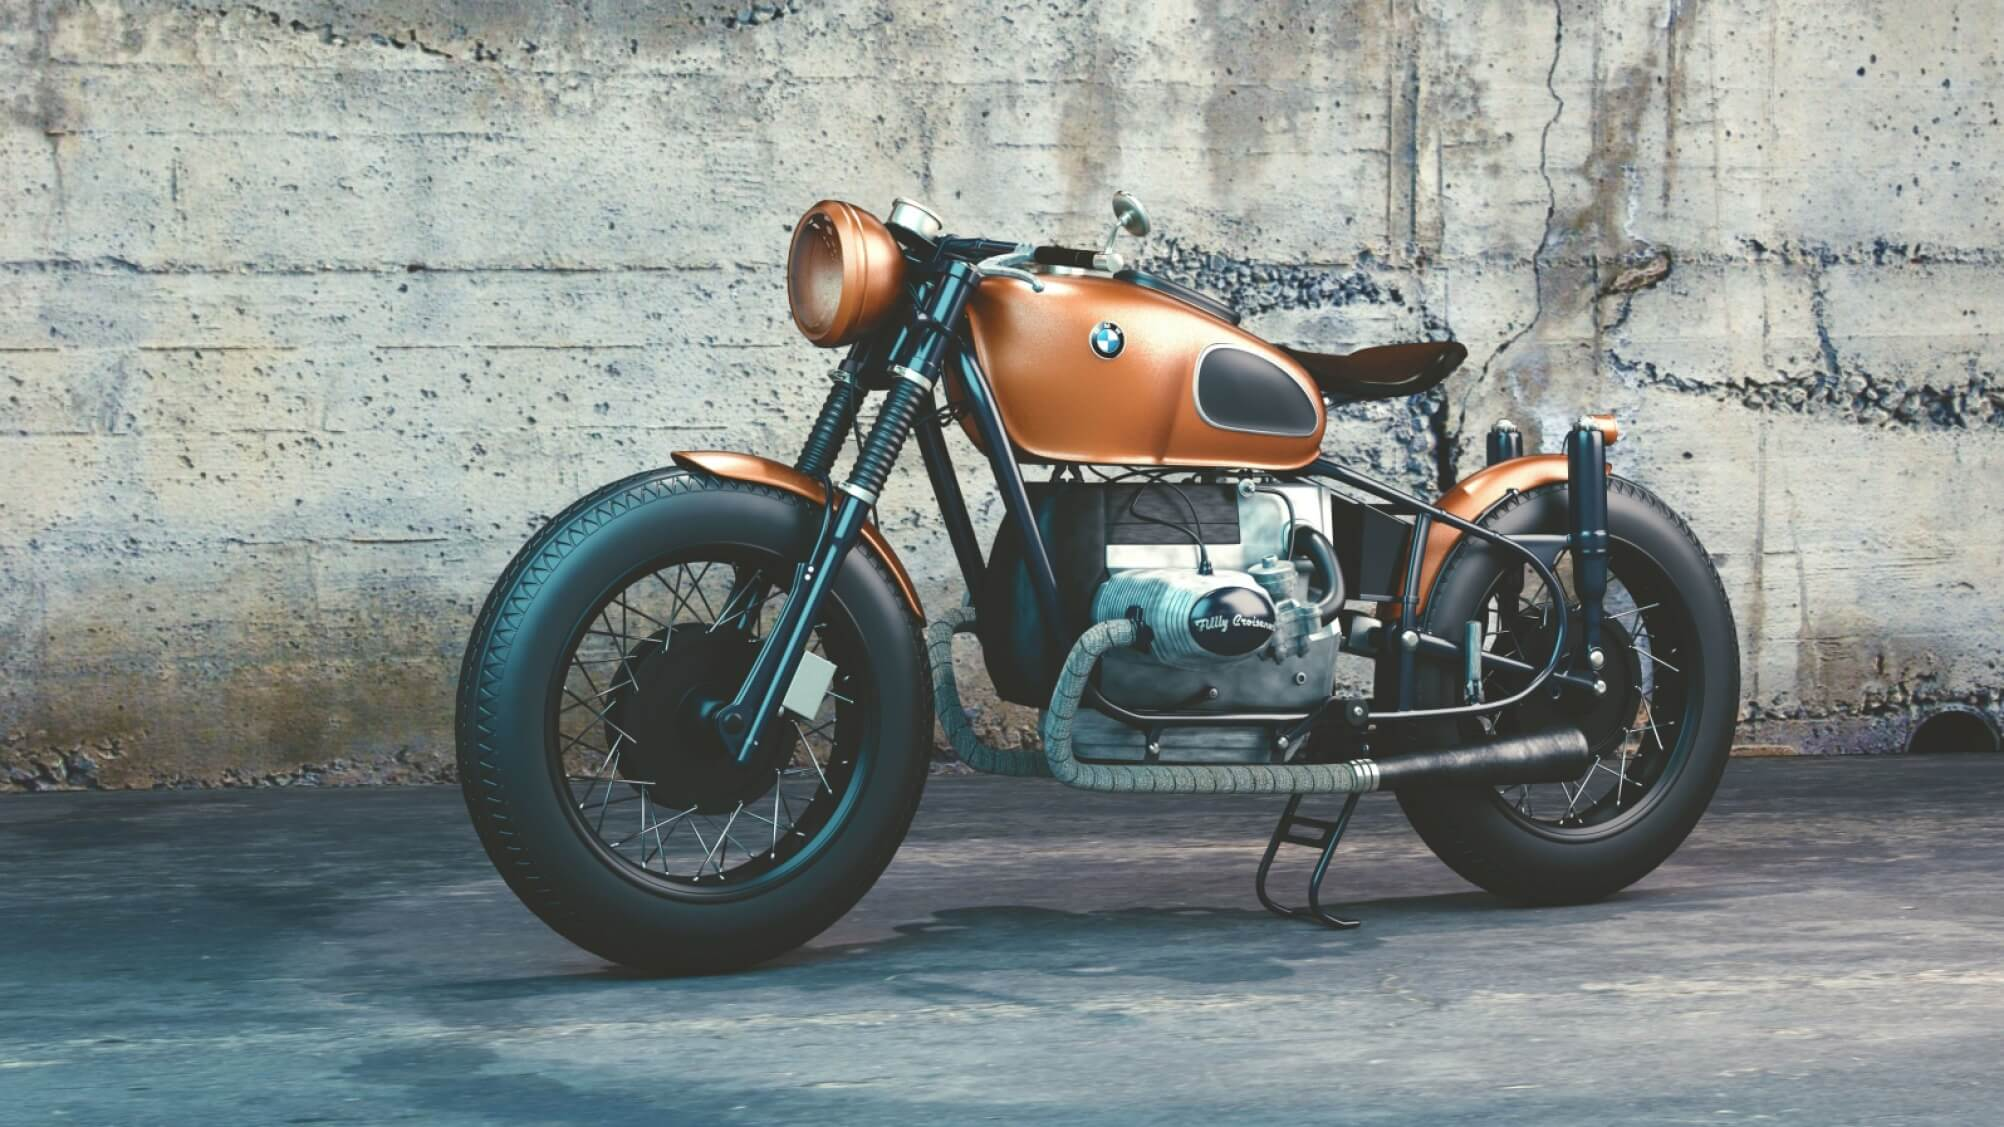 BMW R80 - Original image